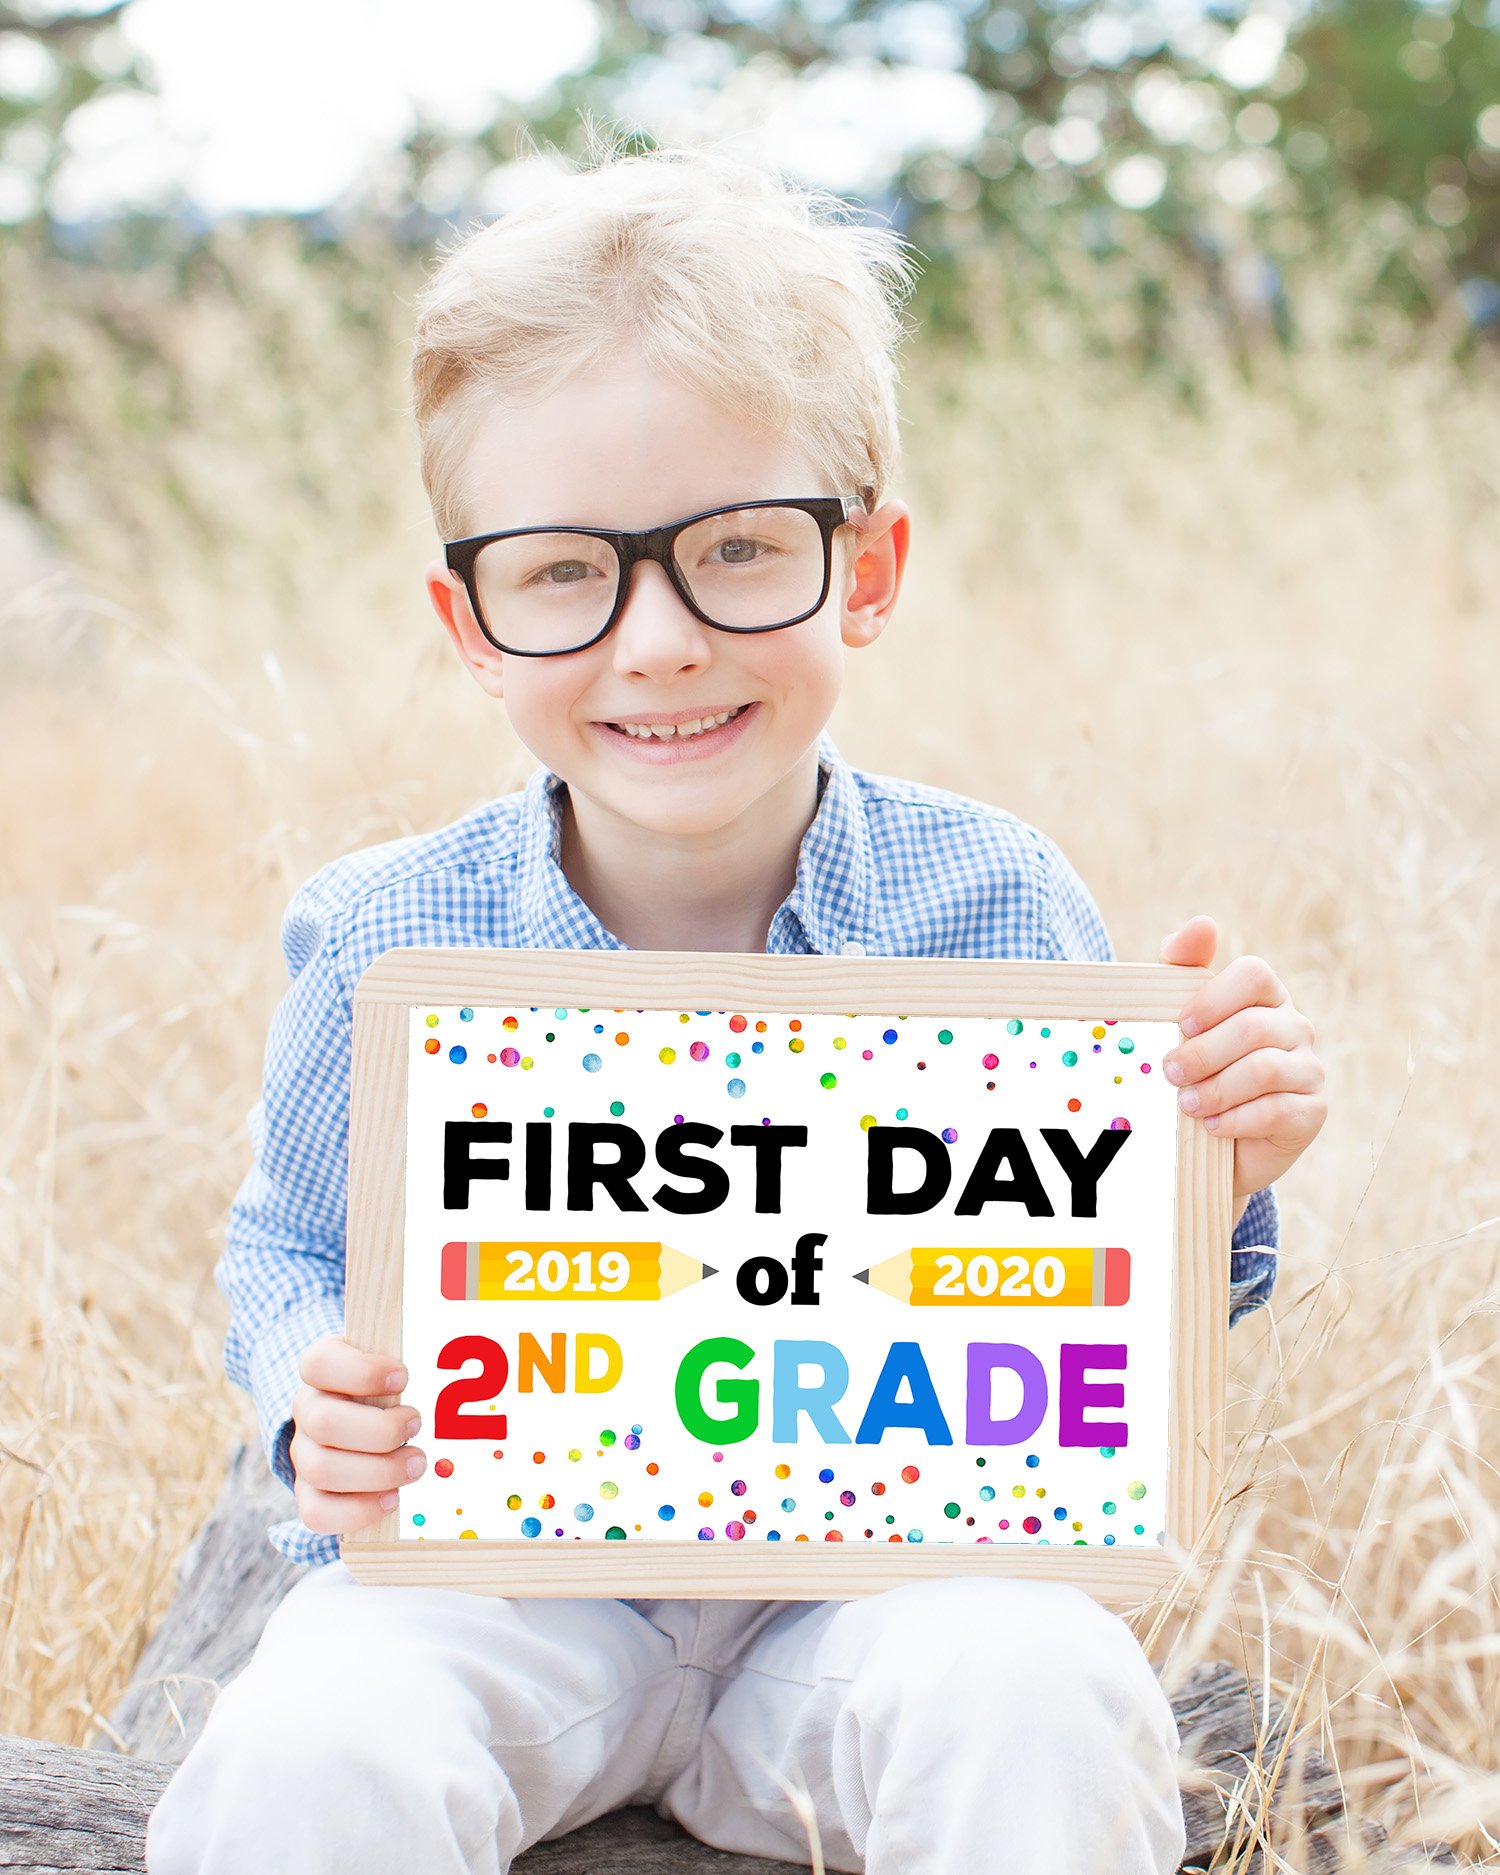 photograph relating to First Day of School Printable referred to as Totally free Printable Very first Working day of Faculty Indicators - Pleasure is Handmade